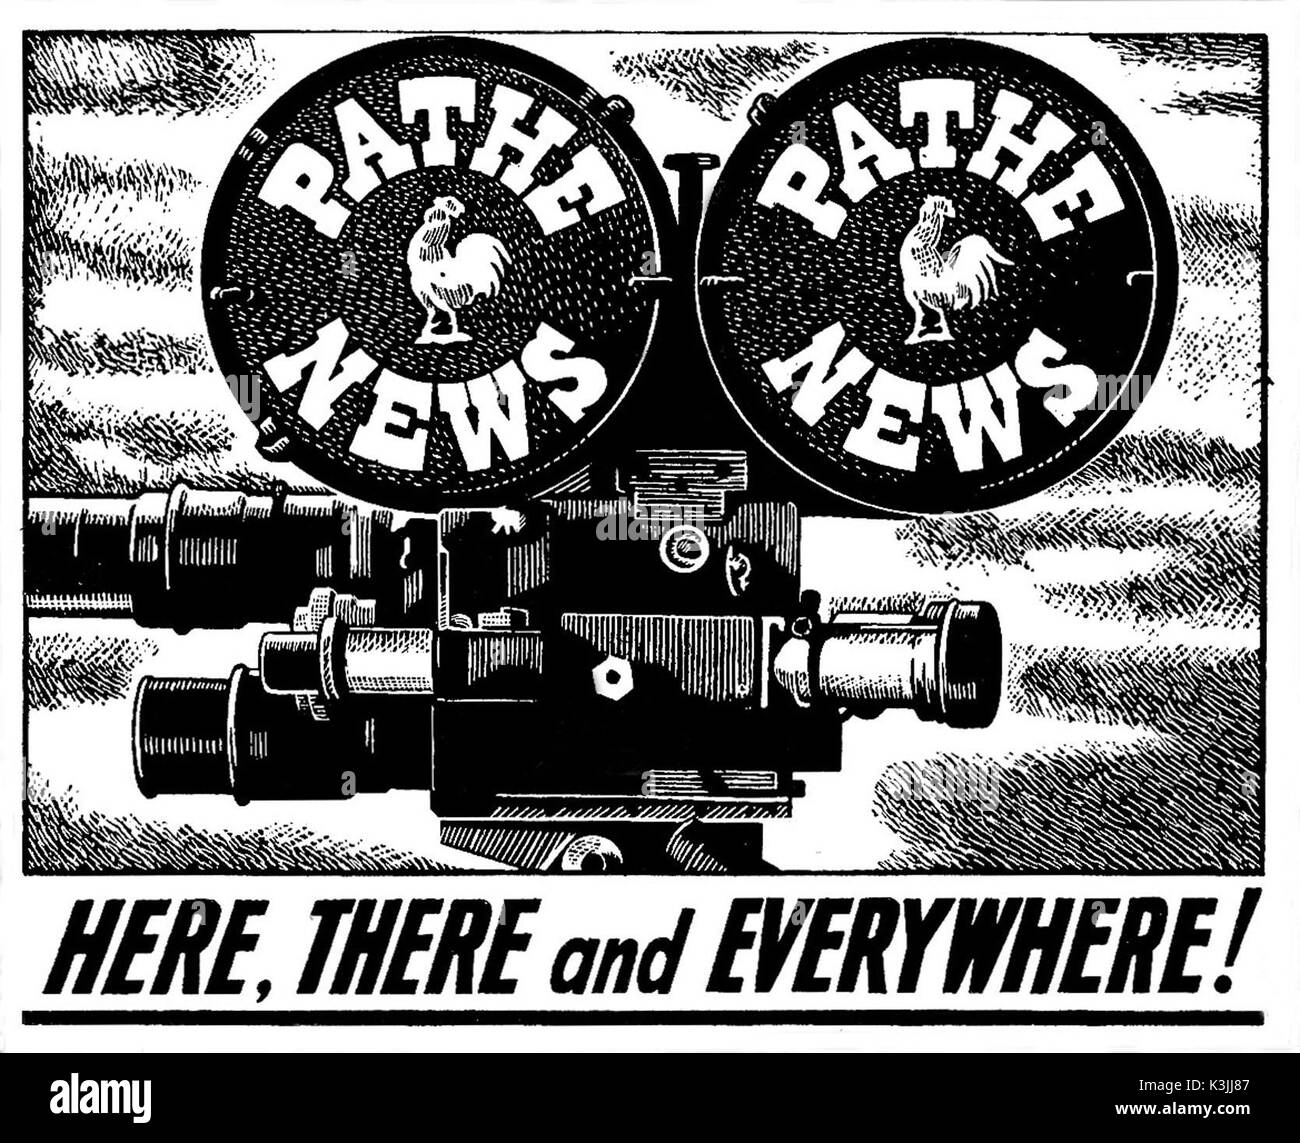 PATHE NEWS ADVERTISEMENT Stock Photo - Alamy